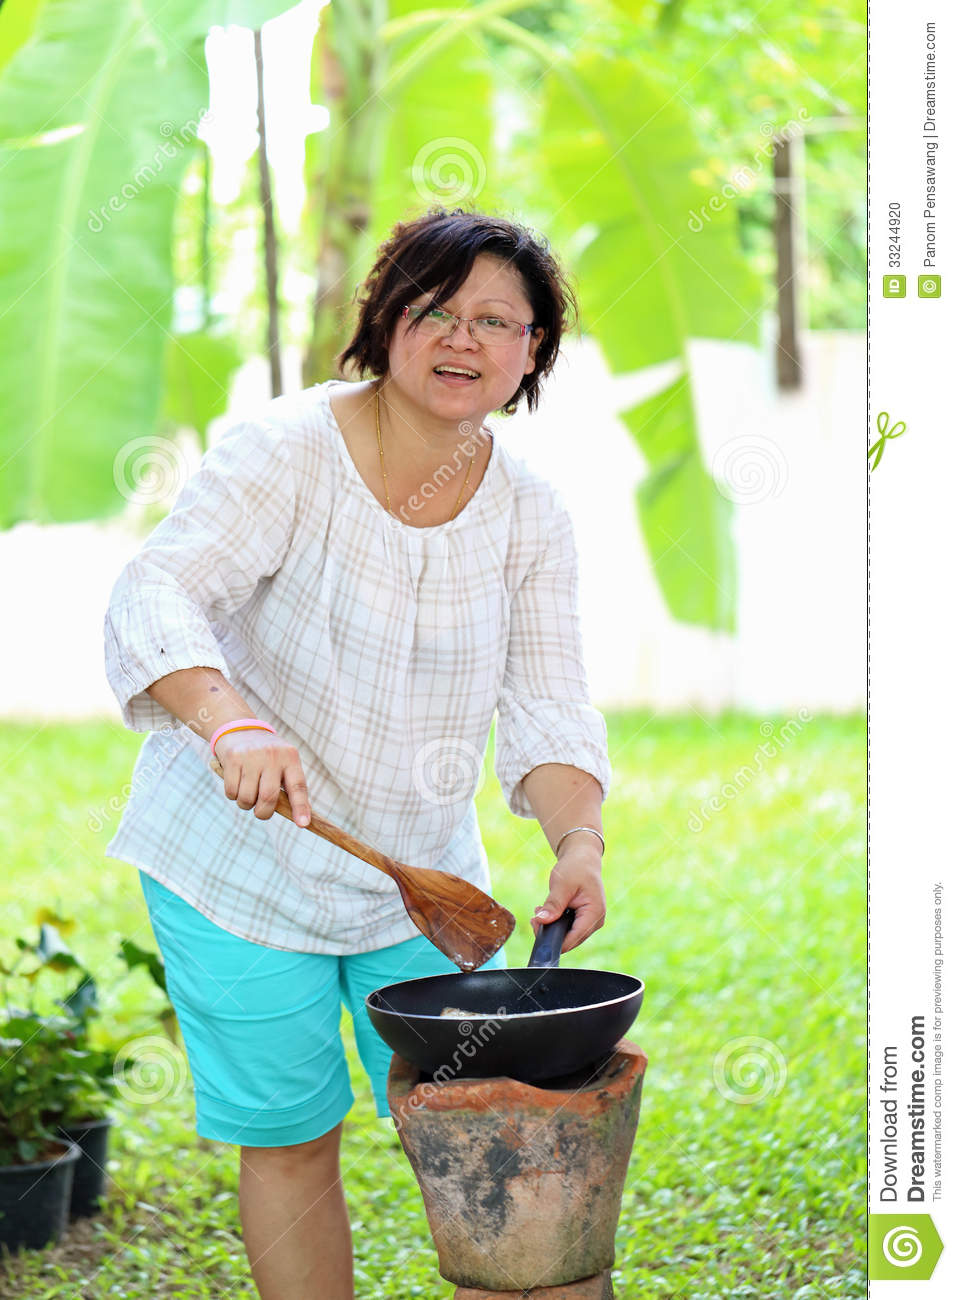 Asian Woman Cooking 54